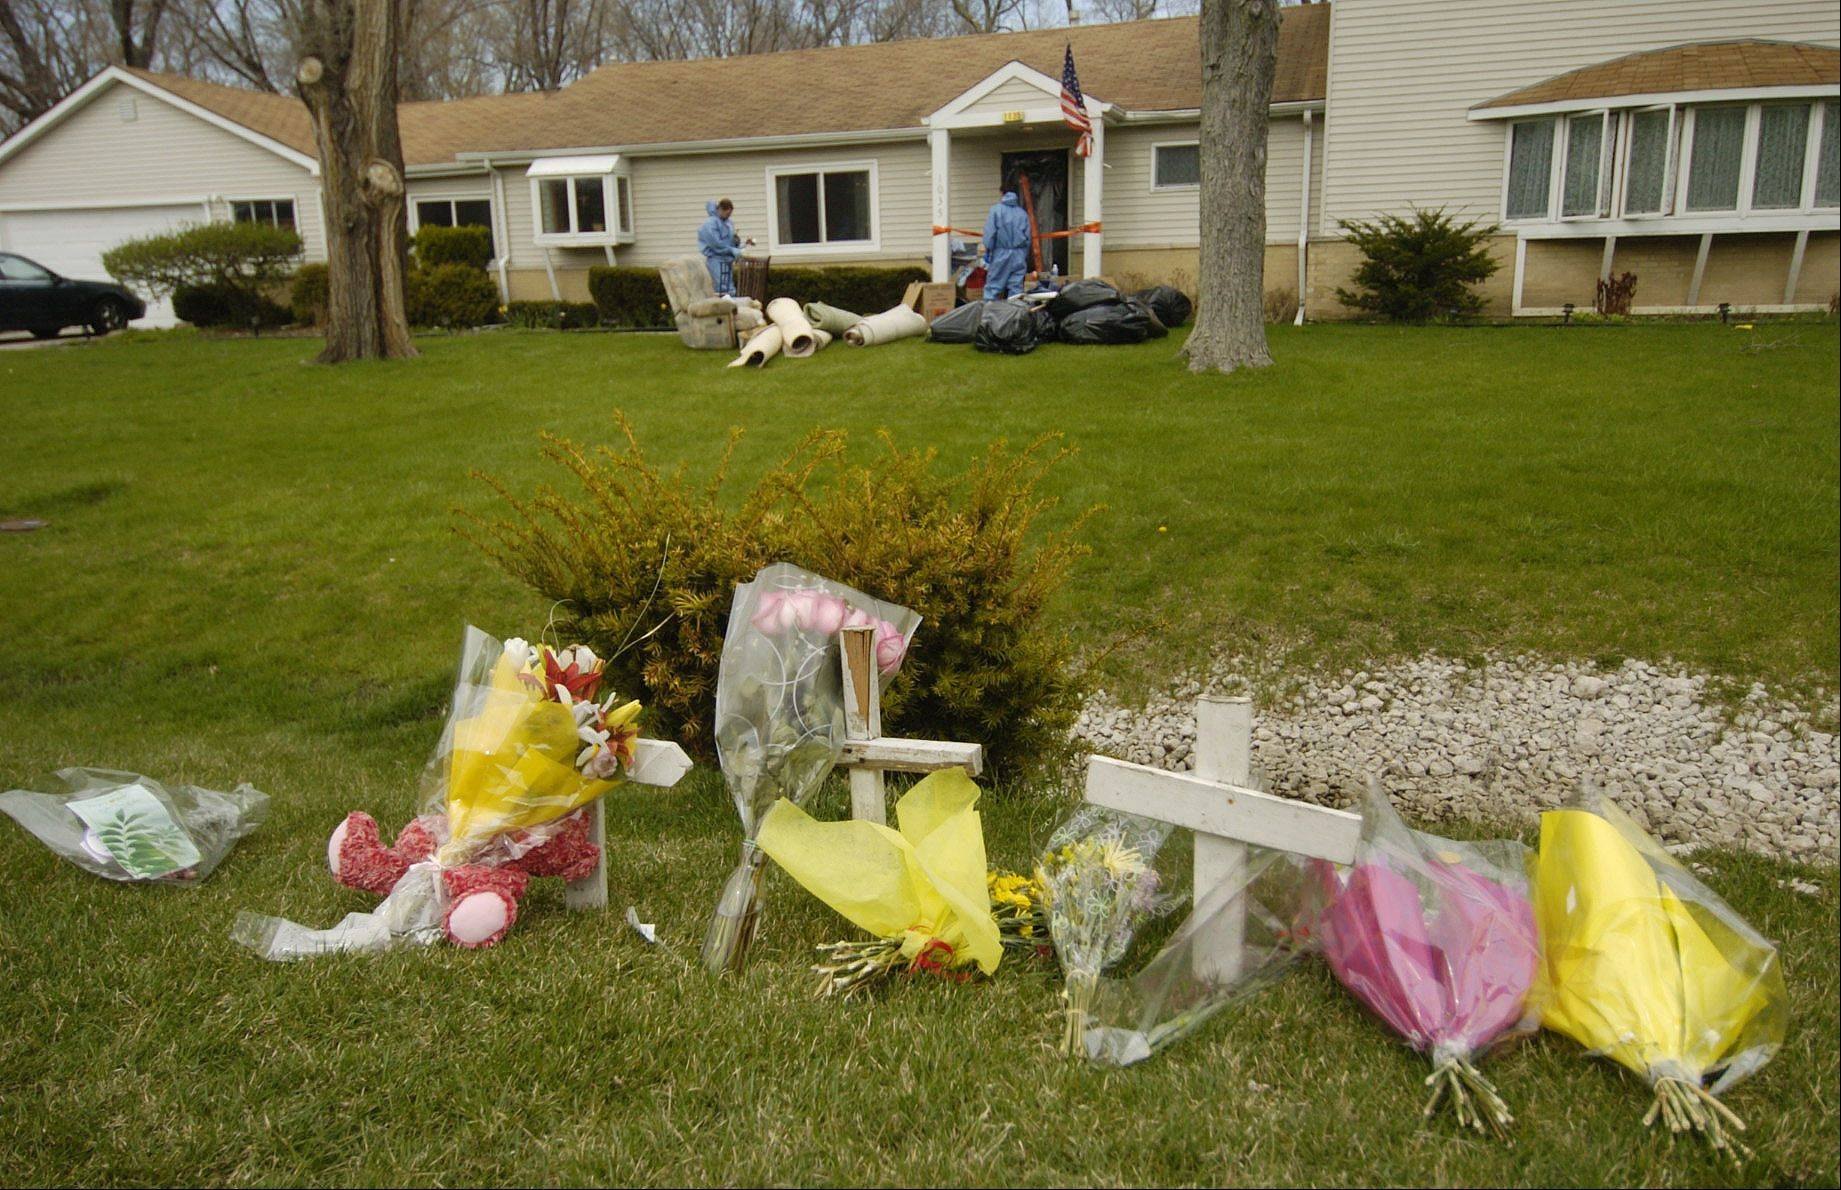 Hoffman cops describe scene of '09 triple murder